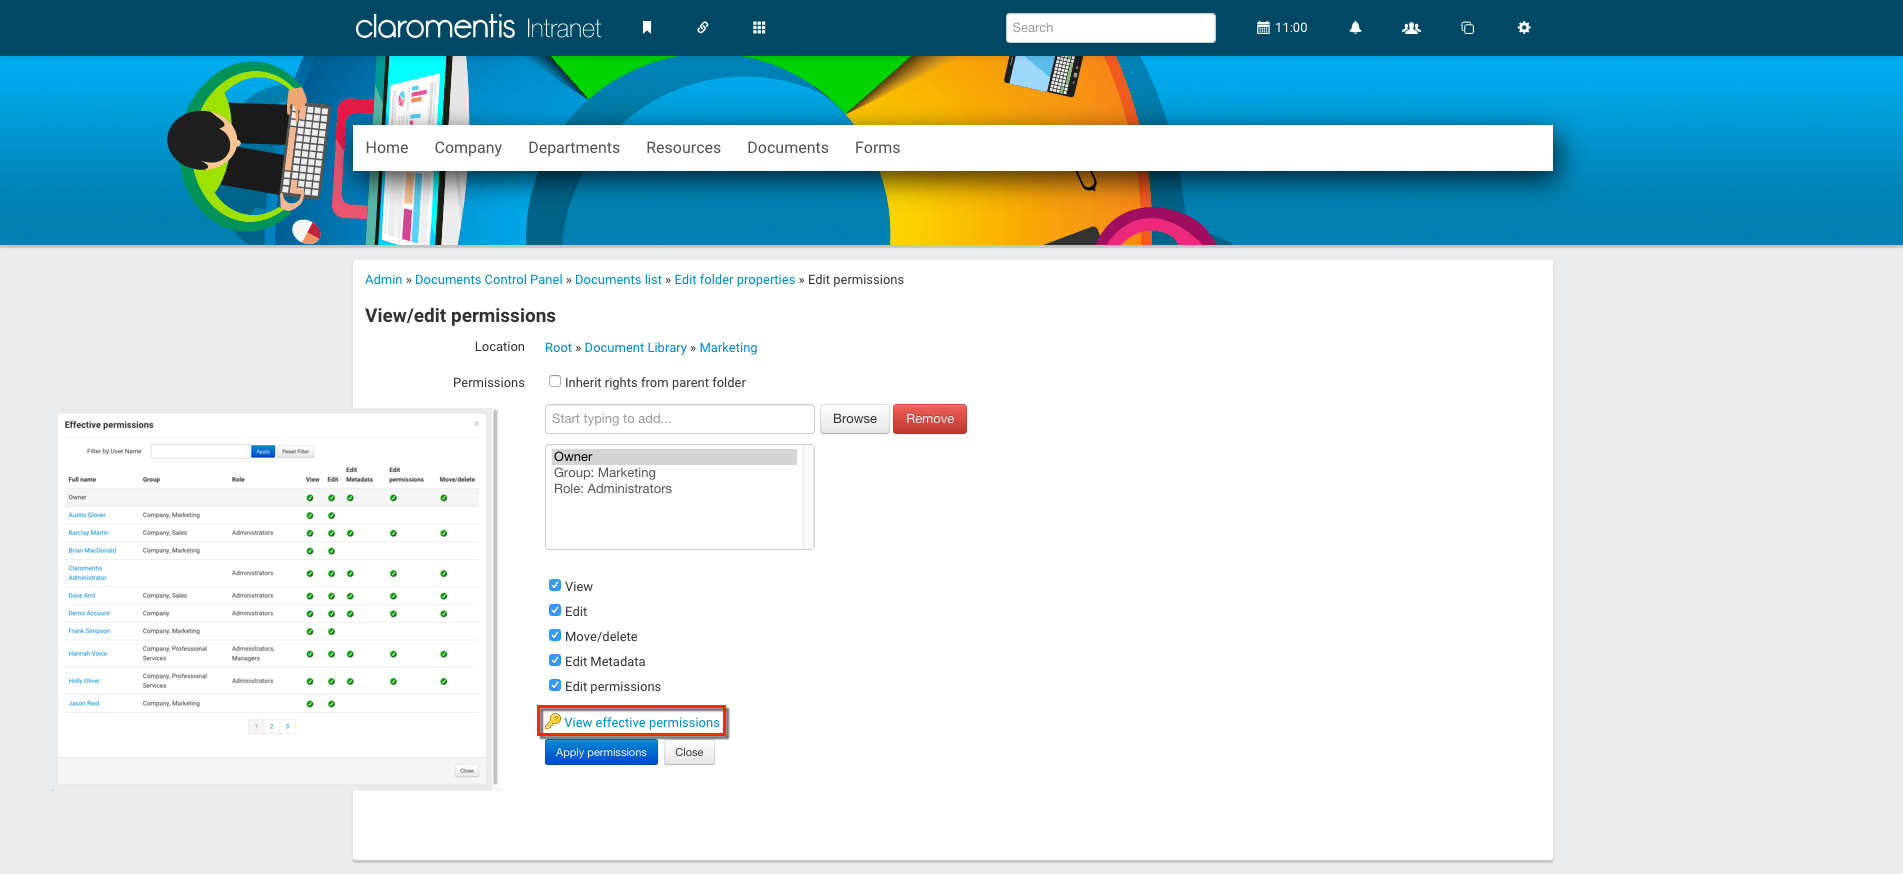 View Effective Permissions Settings in Claromentis